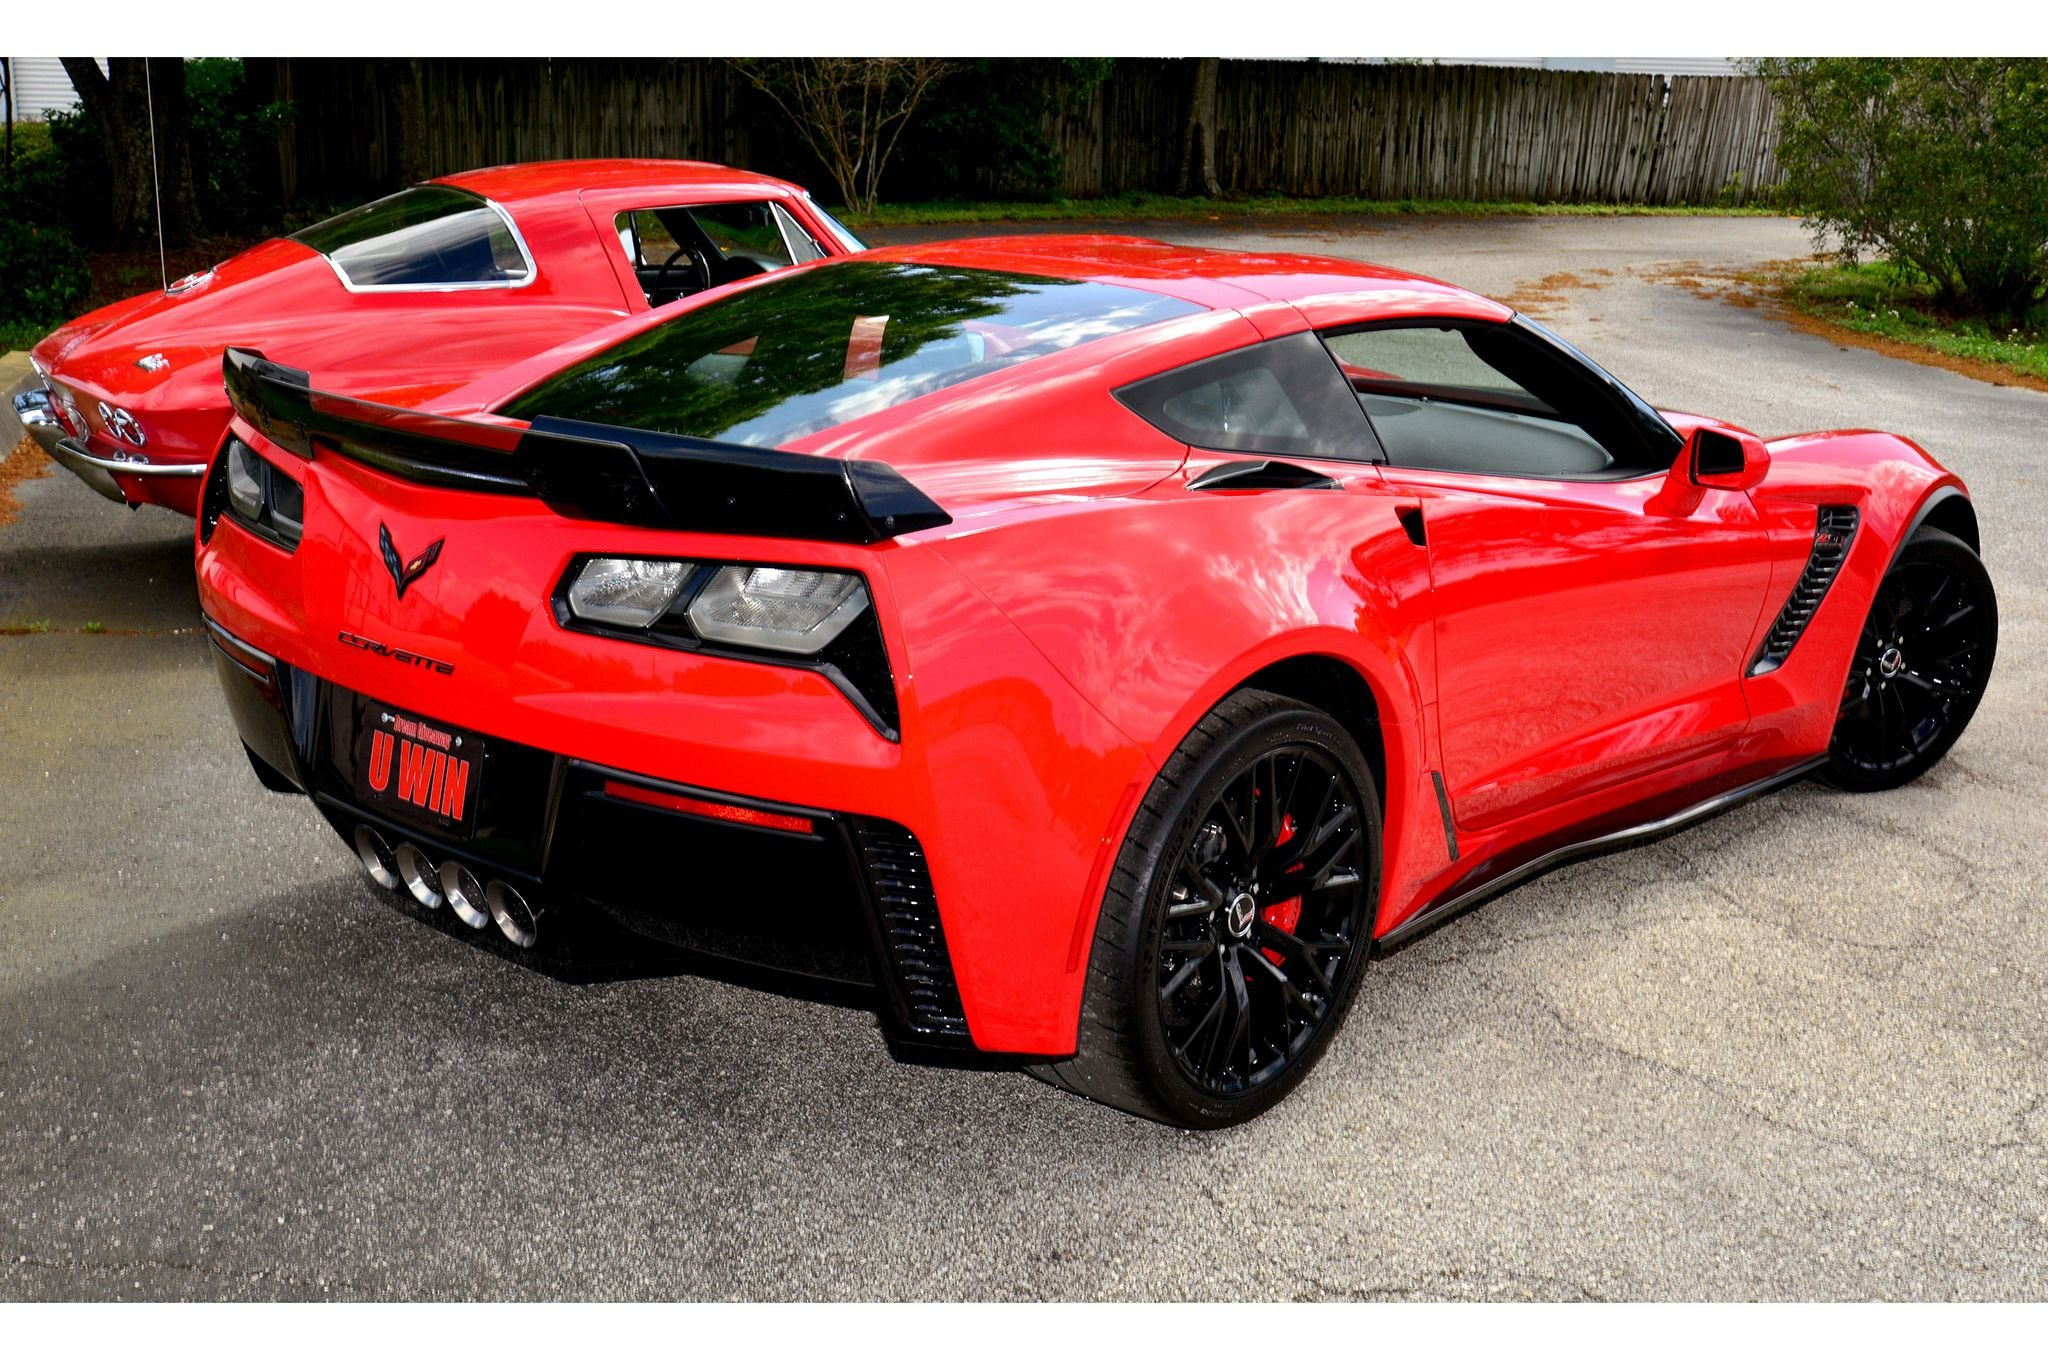 chevy corvette z06 muscle super car red usa 2048x1360 03 wallpaper 2015 corvette stingray - Corvette 2015 Z06 Red